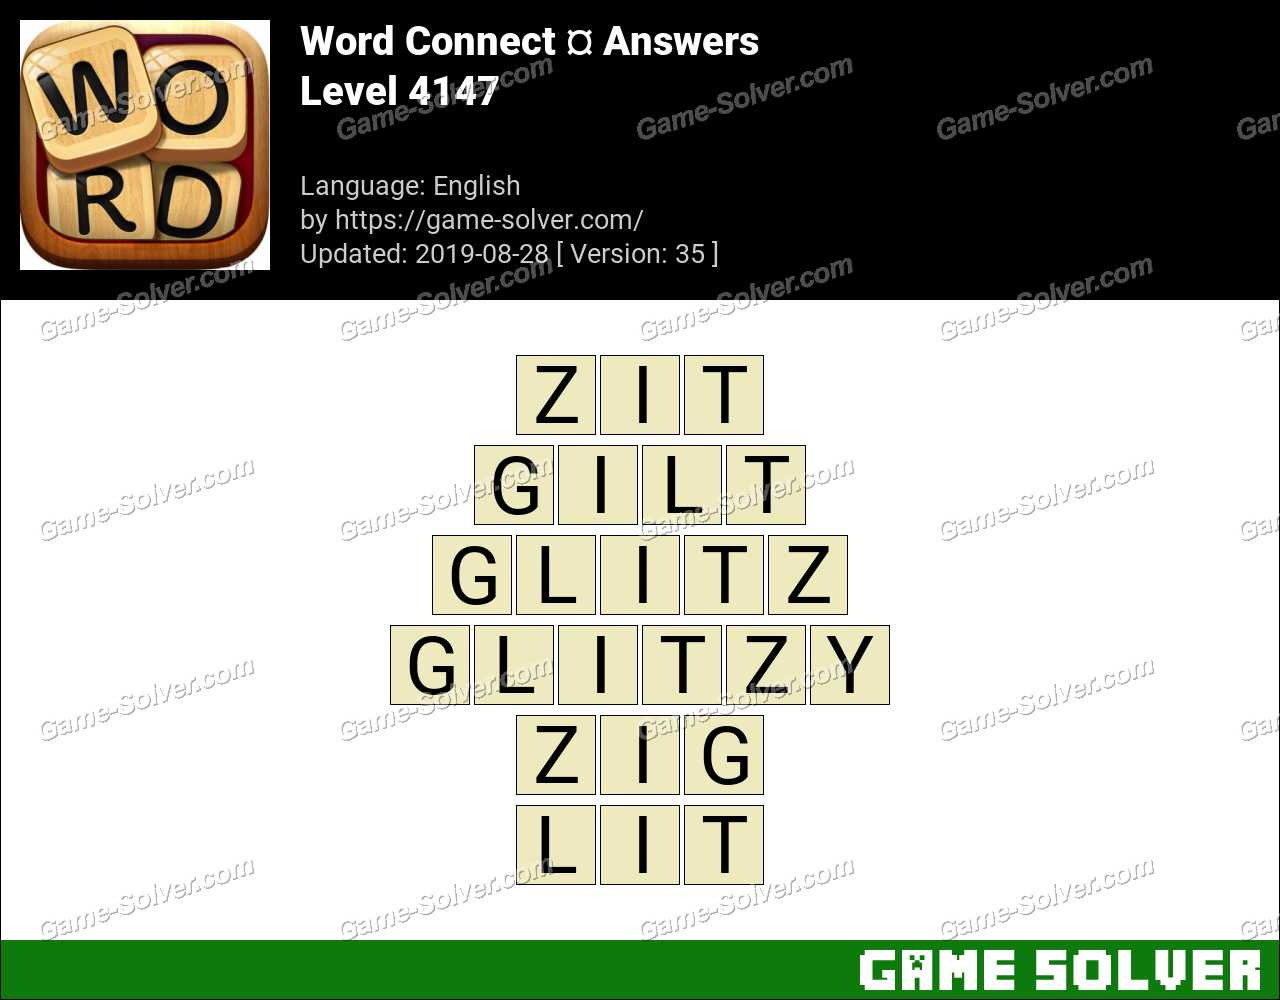 Word Connect Level 4147 Answers